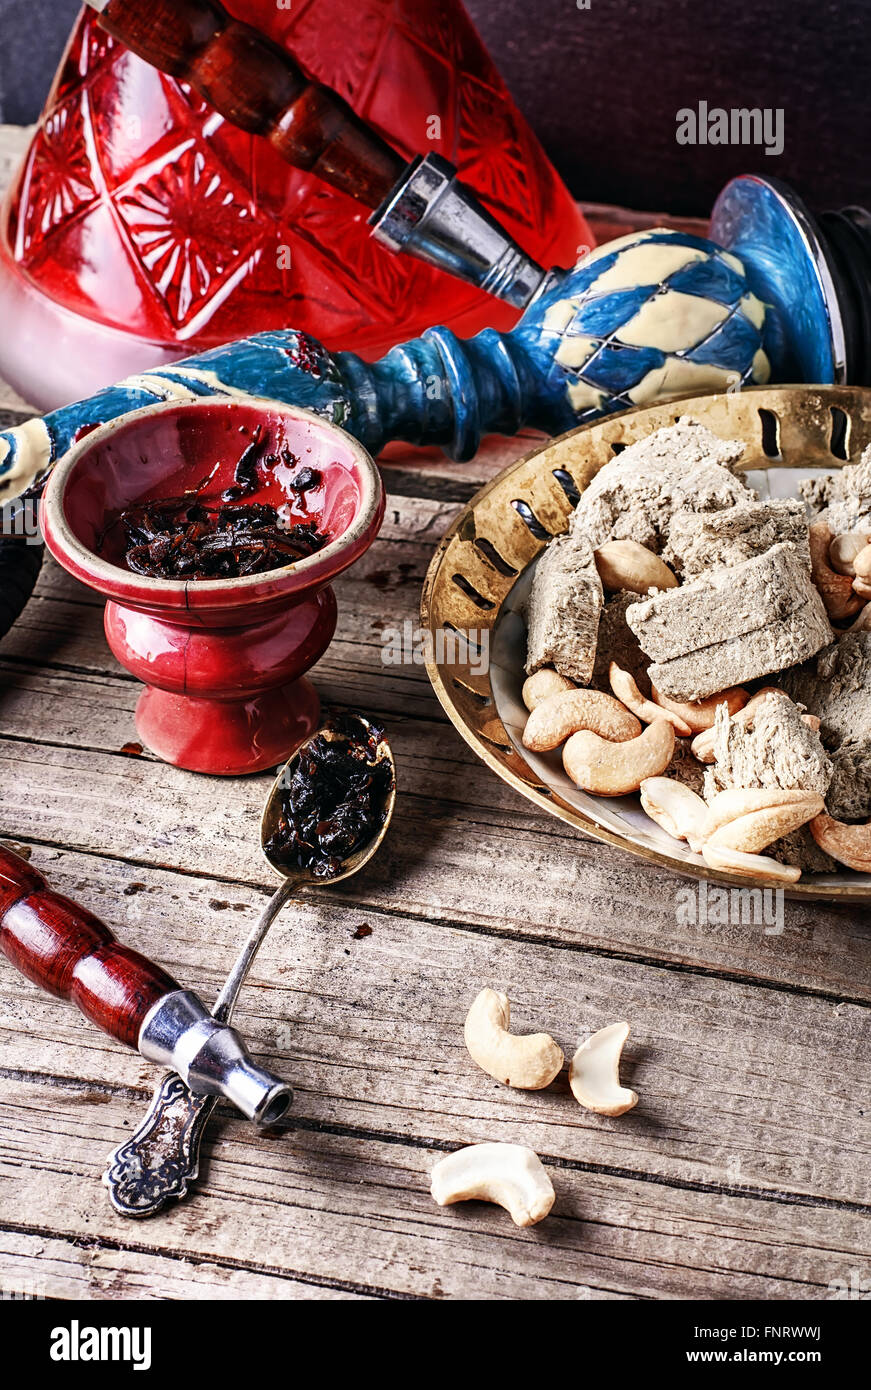 Composition with smoking hookah,tobacco and a plate of halva and cashews - Stock Image